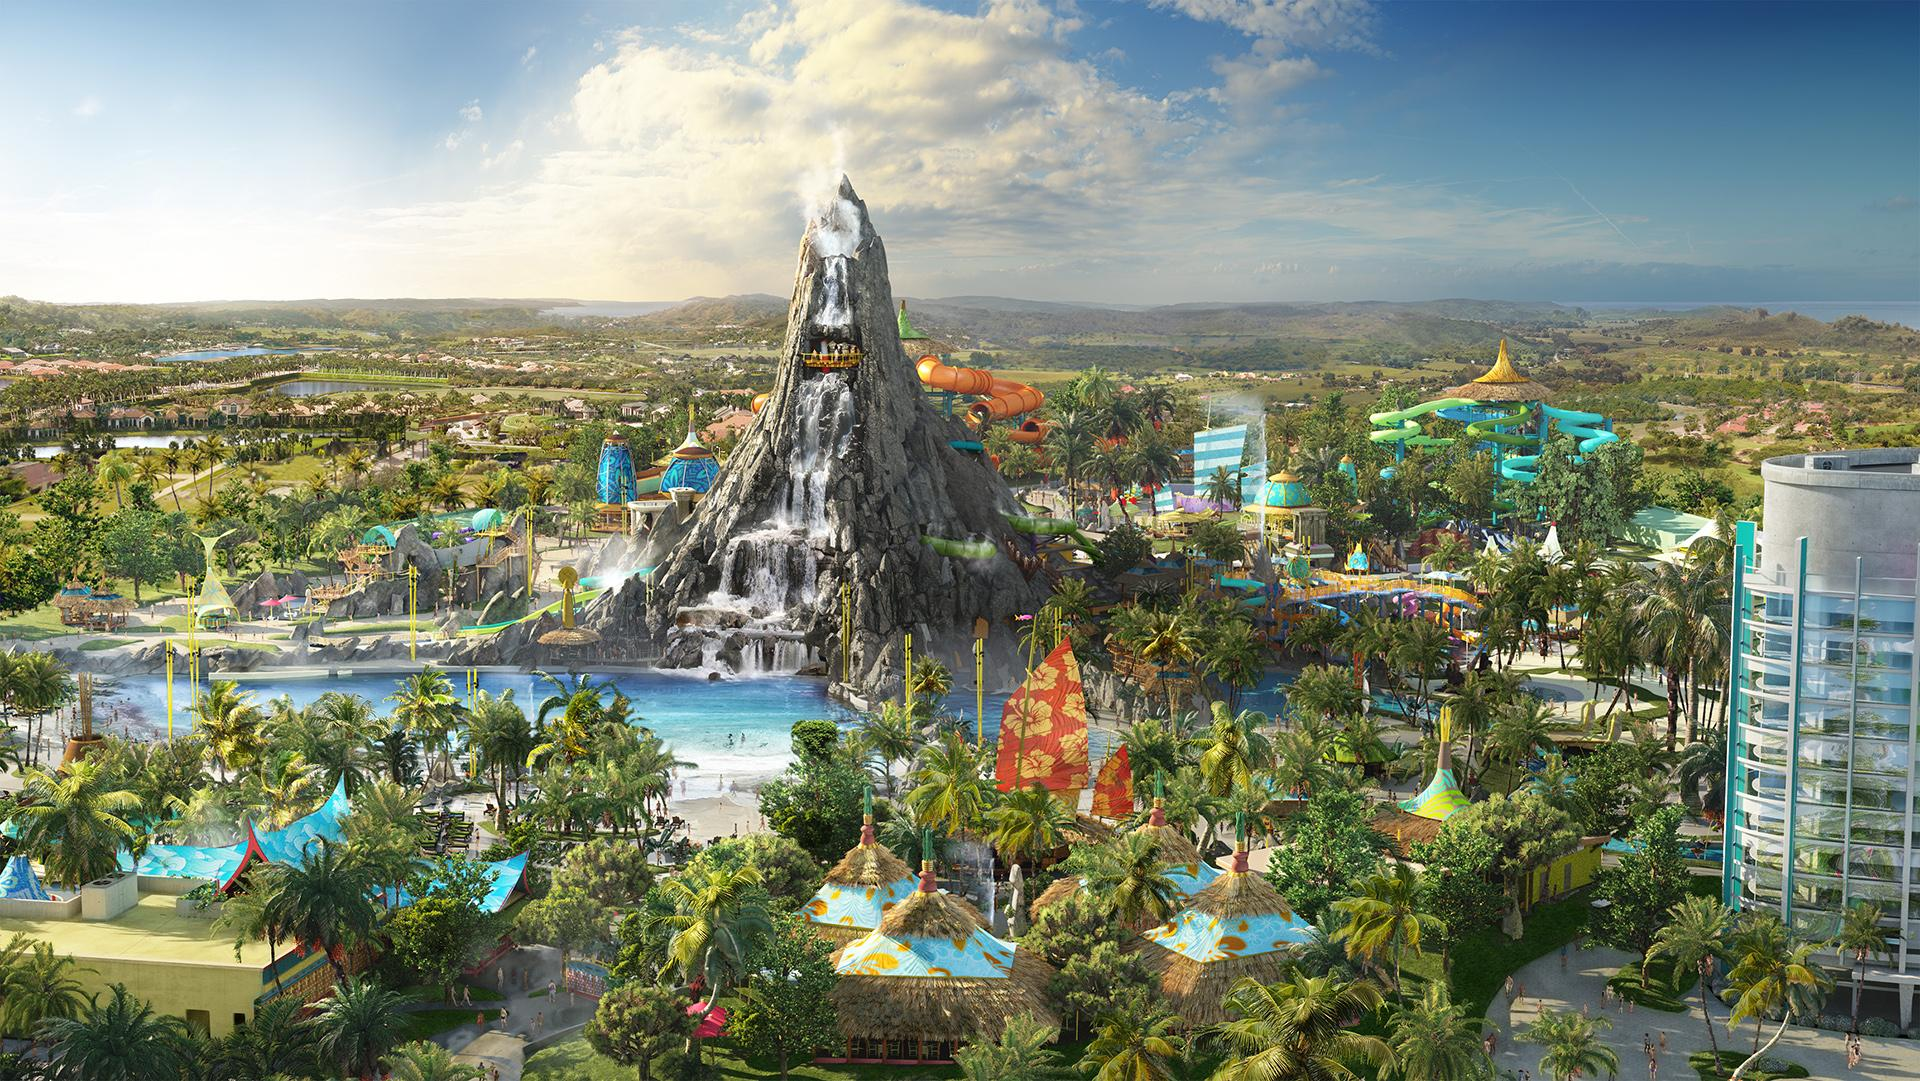 5 Thrills We Can't Wait to Try at Universal's New Volcano Bay™